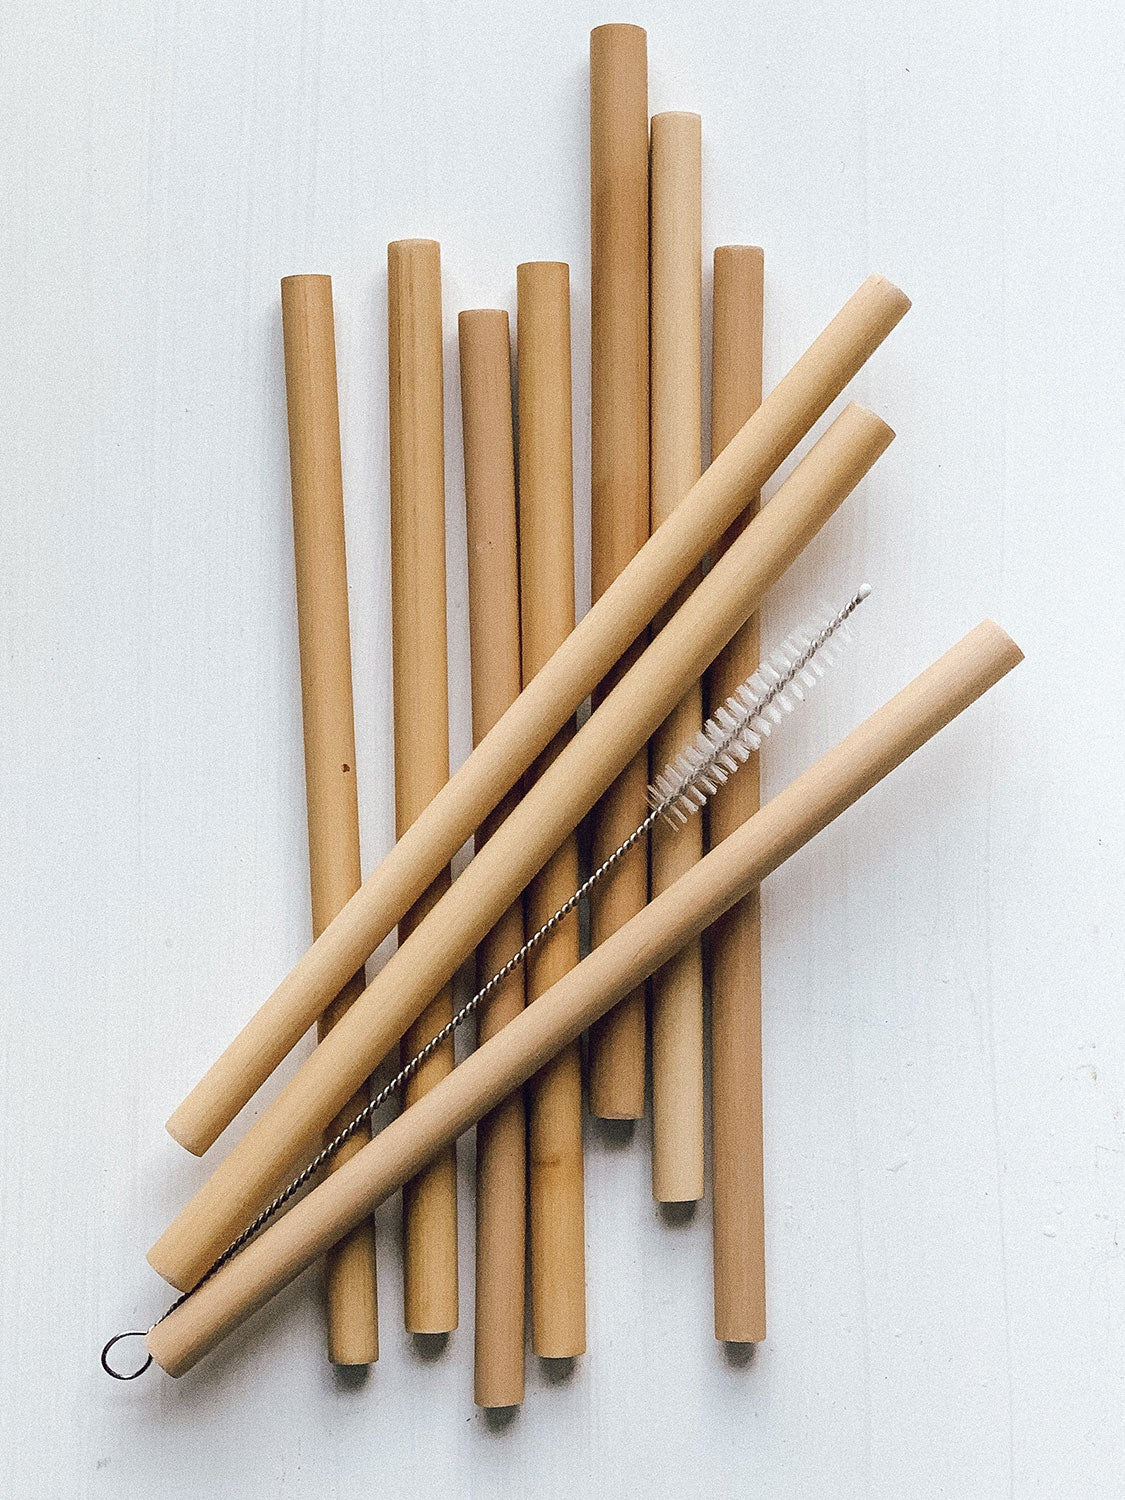 BULUH STRAWS - NATURAL ORGANIC BAMBOO. REUSABLE ECO FRIENDLY AND BPA-FREE. A BIODEGRADABLE SAFE ALTERNATIVE TO PLASTIC, GLASS AND STAINLESS STEEL. 8 STRAWS, CLEANING BRUSH AND CUSTOM BAG